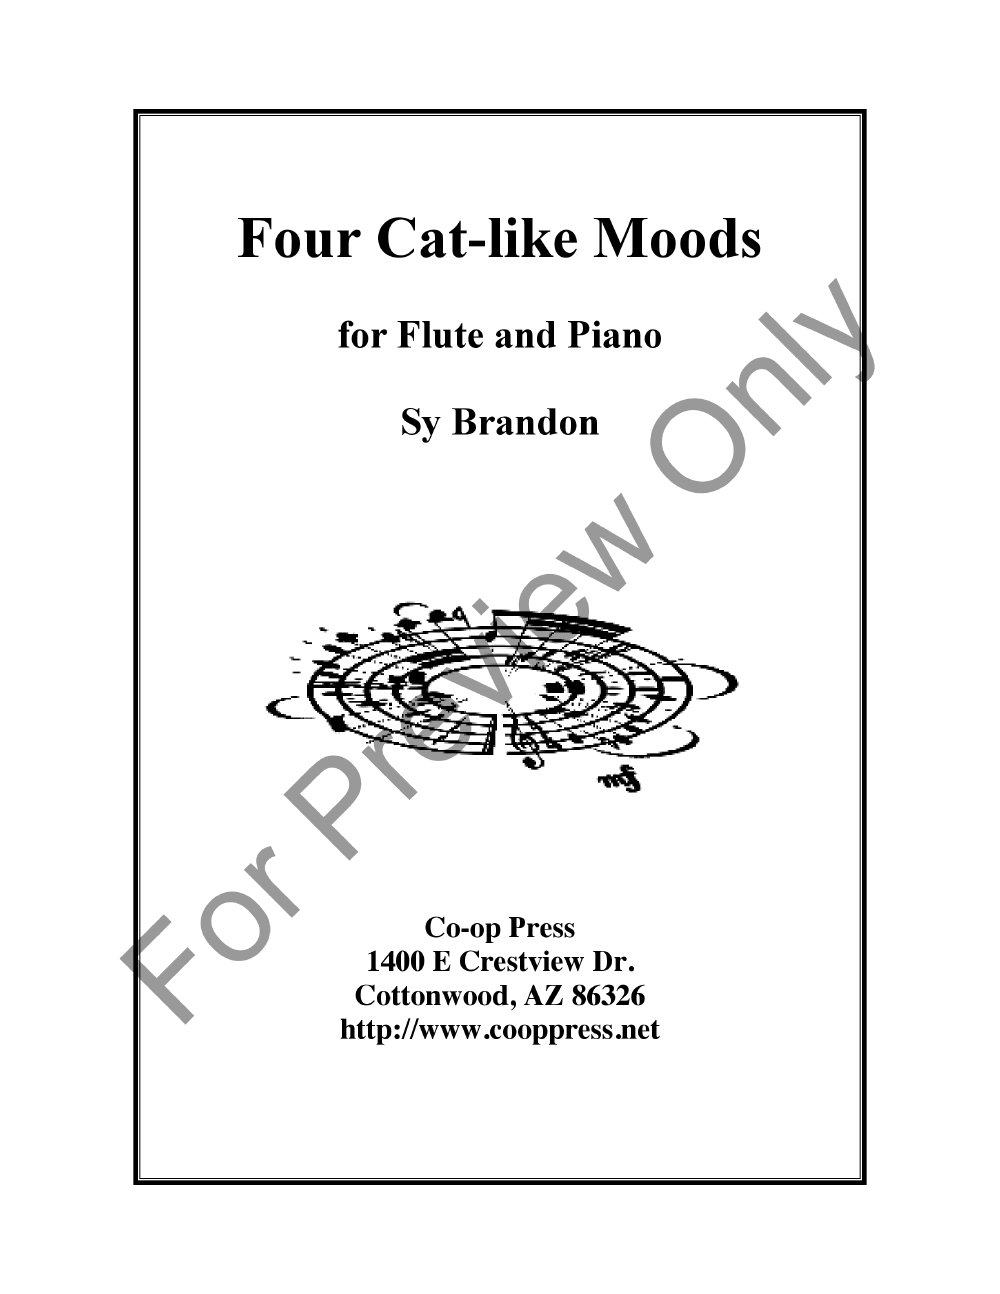 Four Cat-like Moods for Flute and Piano Thumbnail